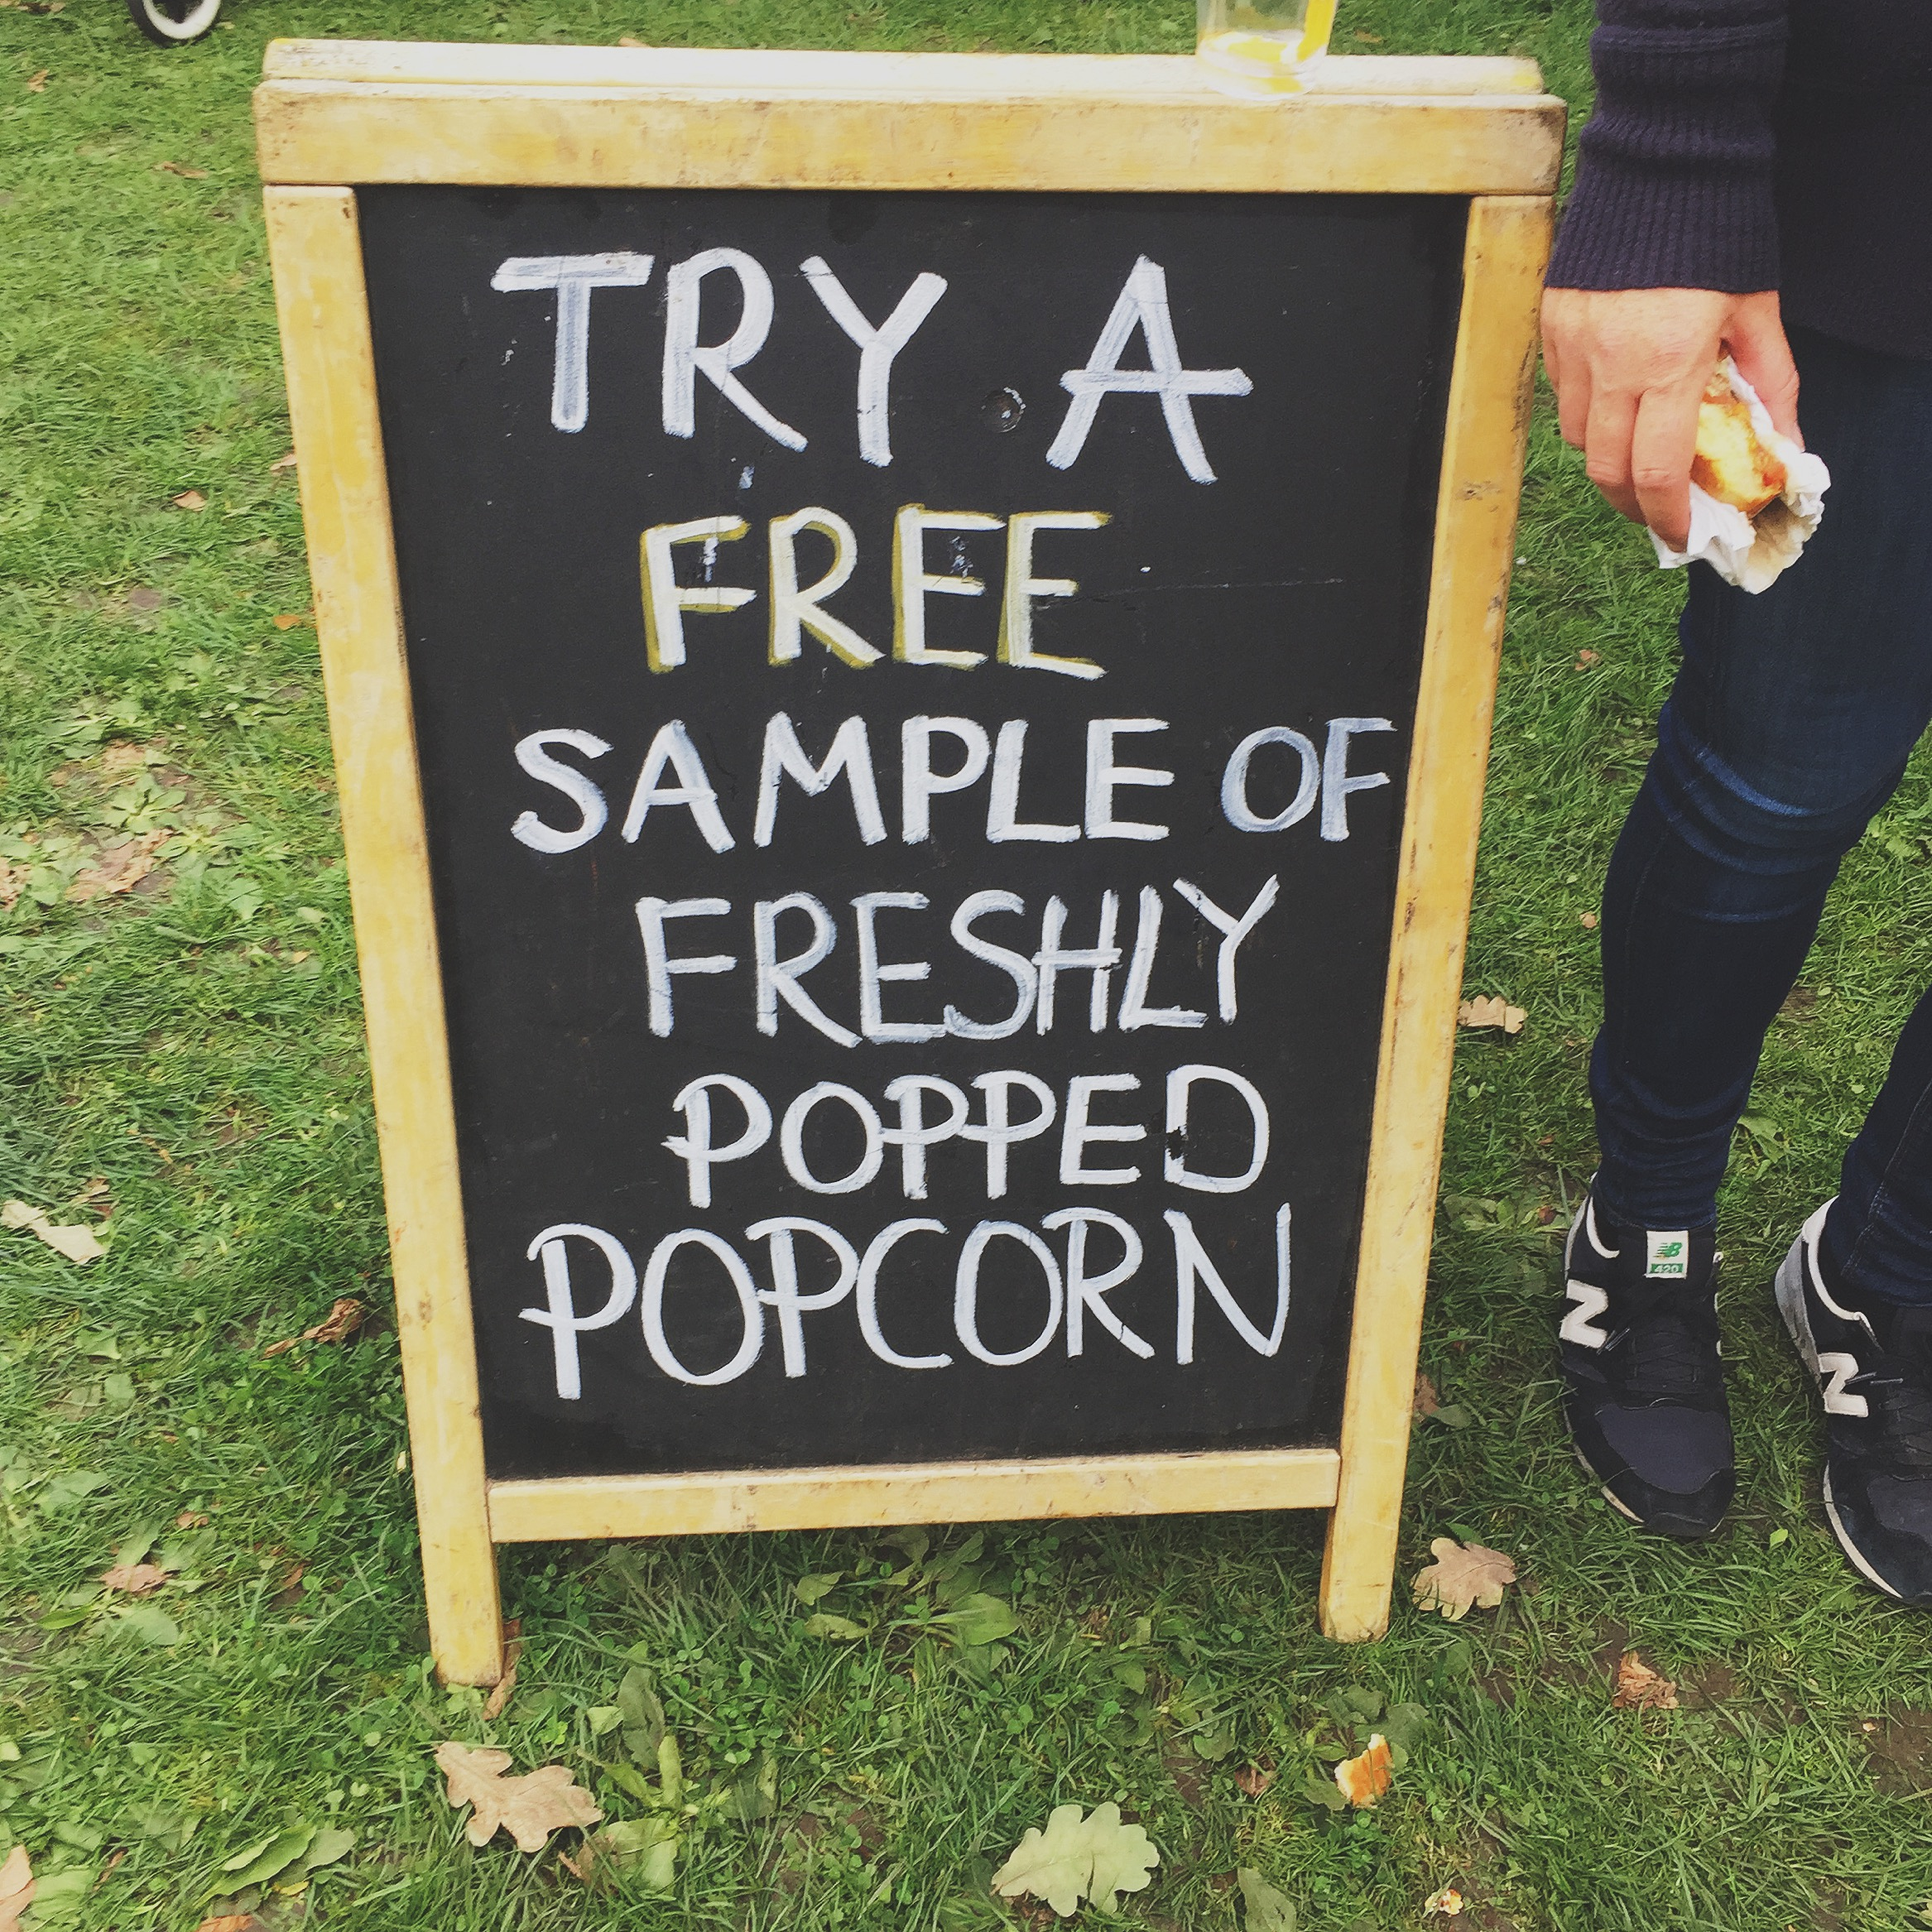 Free samples, yes please!